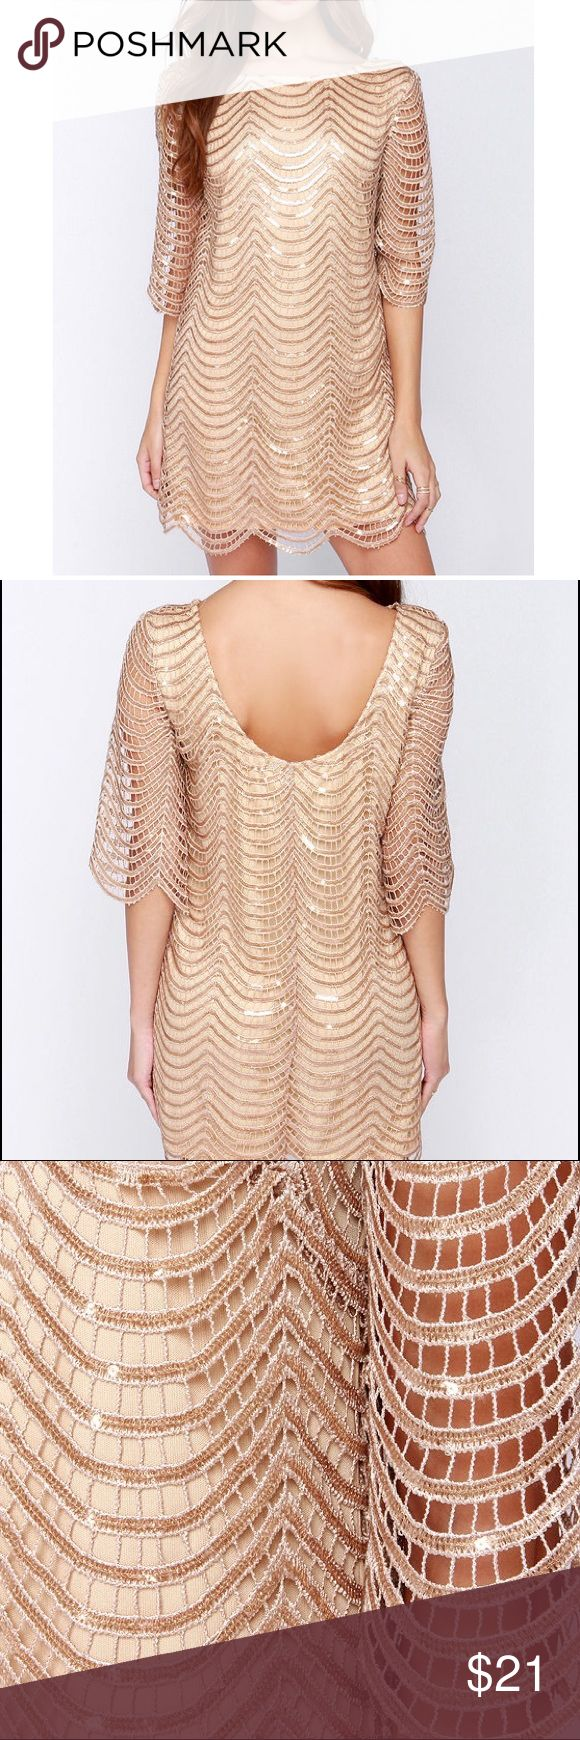 Ark & Co. BEIGE / GOLD SEQUIN COCKTAIL DRESS UNDER THE AFFLUENCE BEIGE SEQUIN DRESS size small. Cocktail dress. Worn once! I'm pregnant now so won't be needing it for NYE, sadly. Ark & Co Dresses Mini